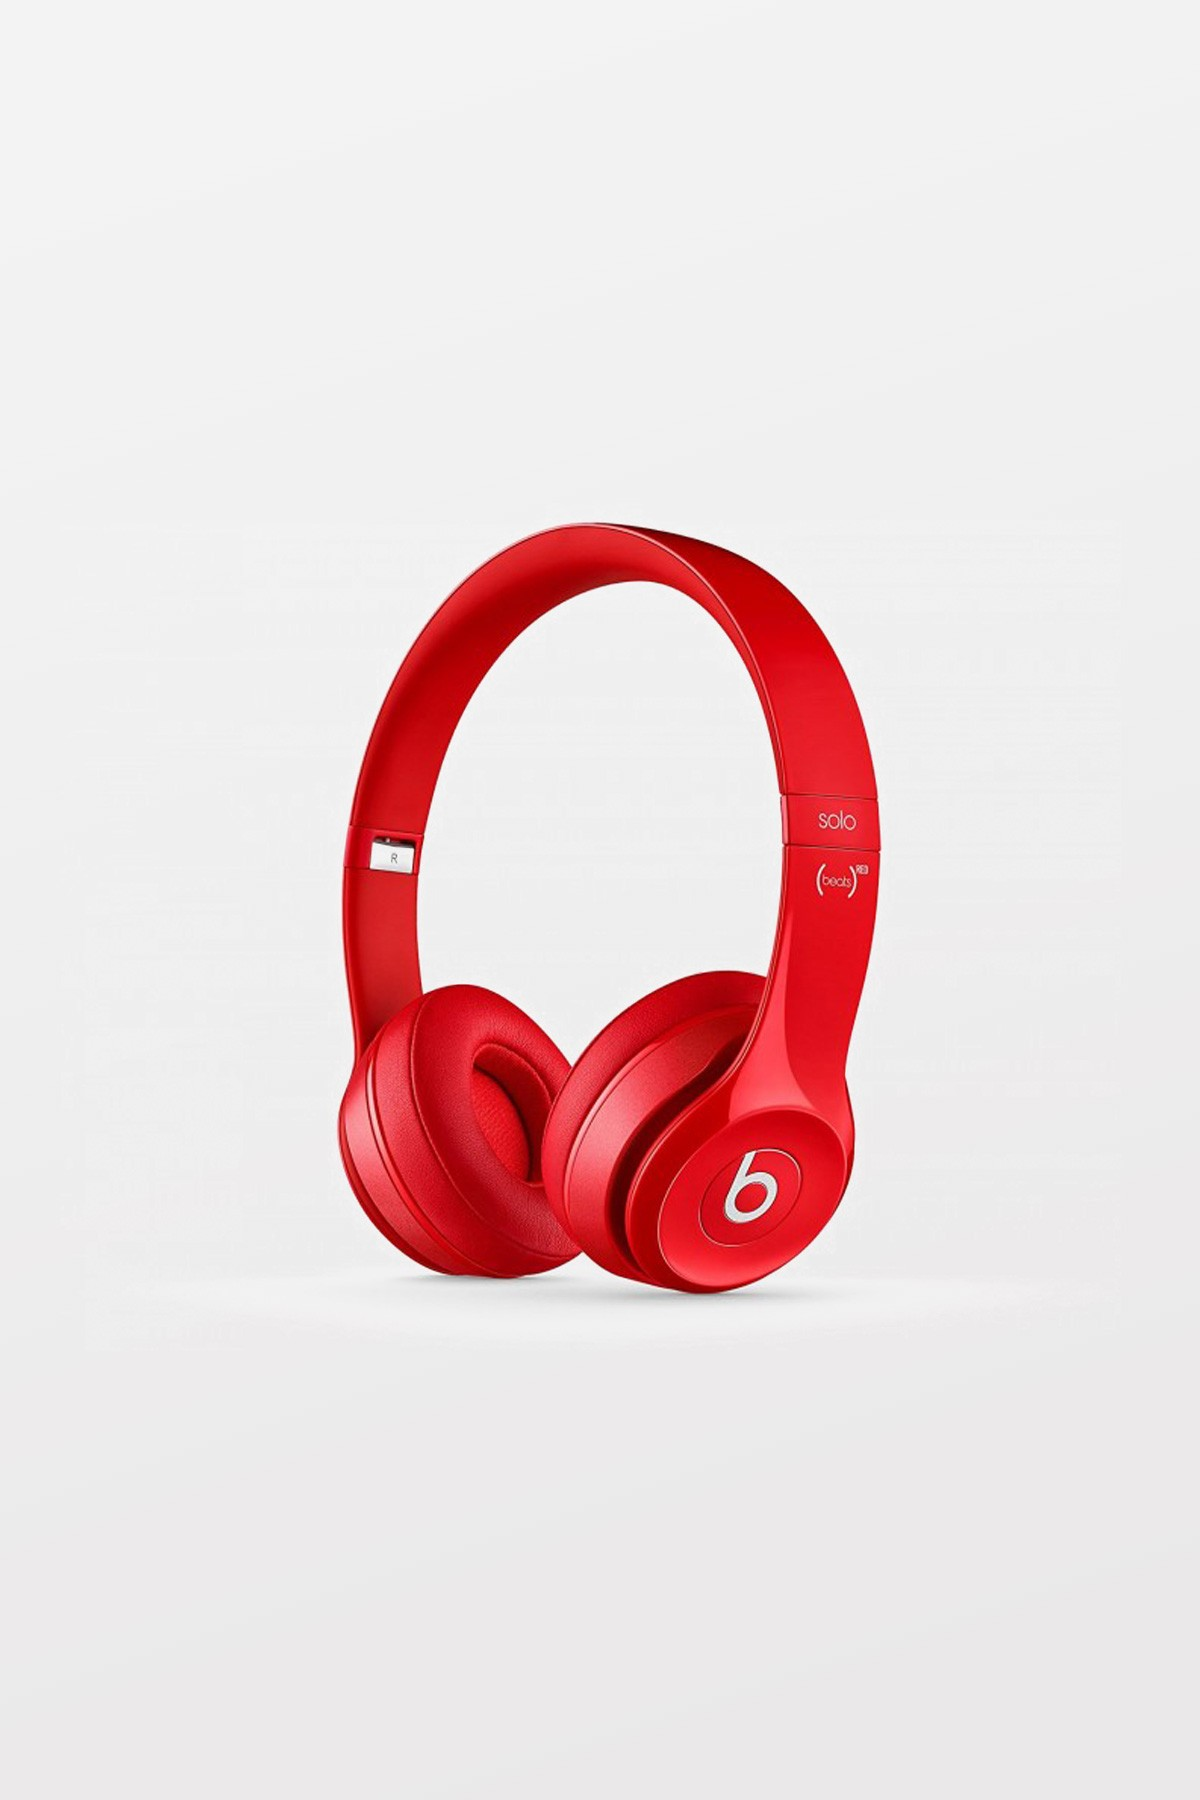 Beats By Dr Dre Solo2 Wireless - Red - Refurbished